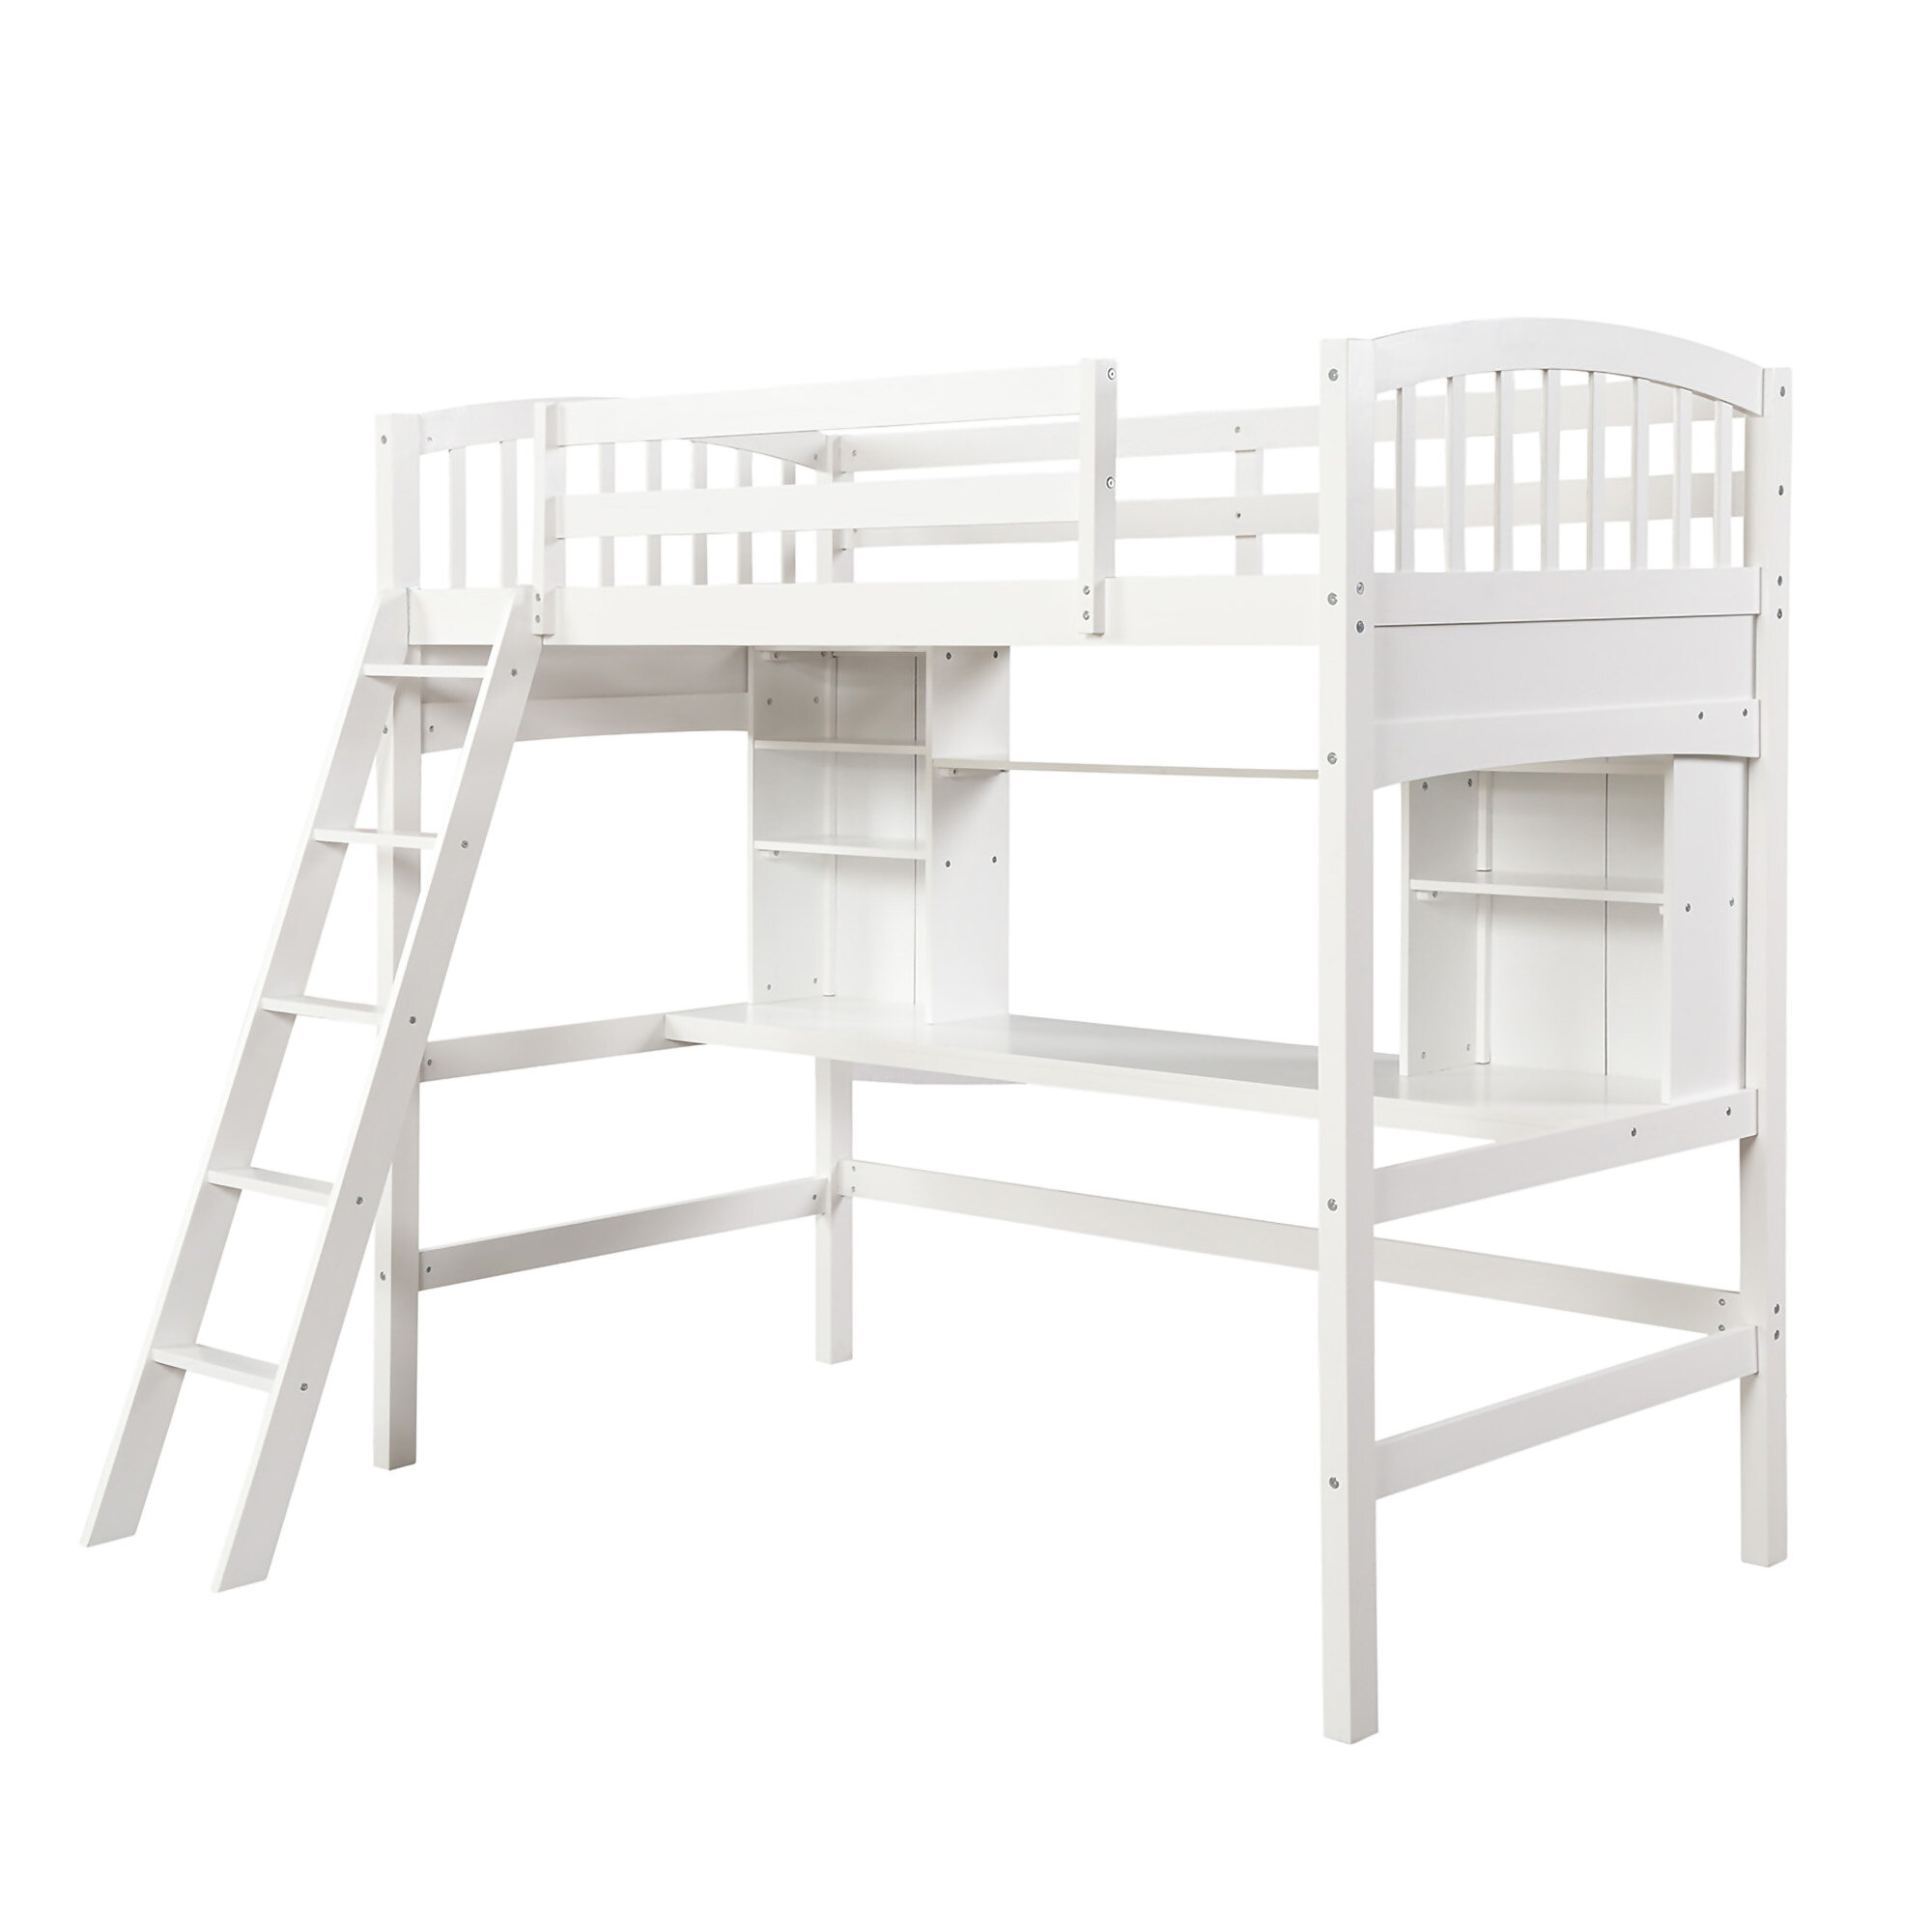 Harriet Bee Twin Loft Beds With Desk And Shelves Wood Bunk Beds With Desk With Build In Ladders Space Saving Design No Box Spring Needed Wayfair